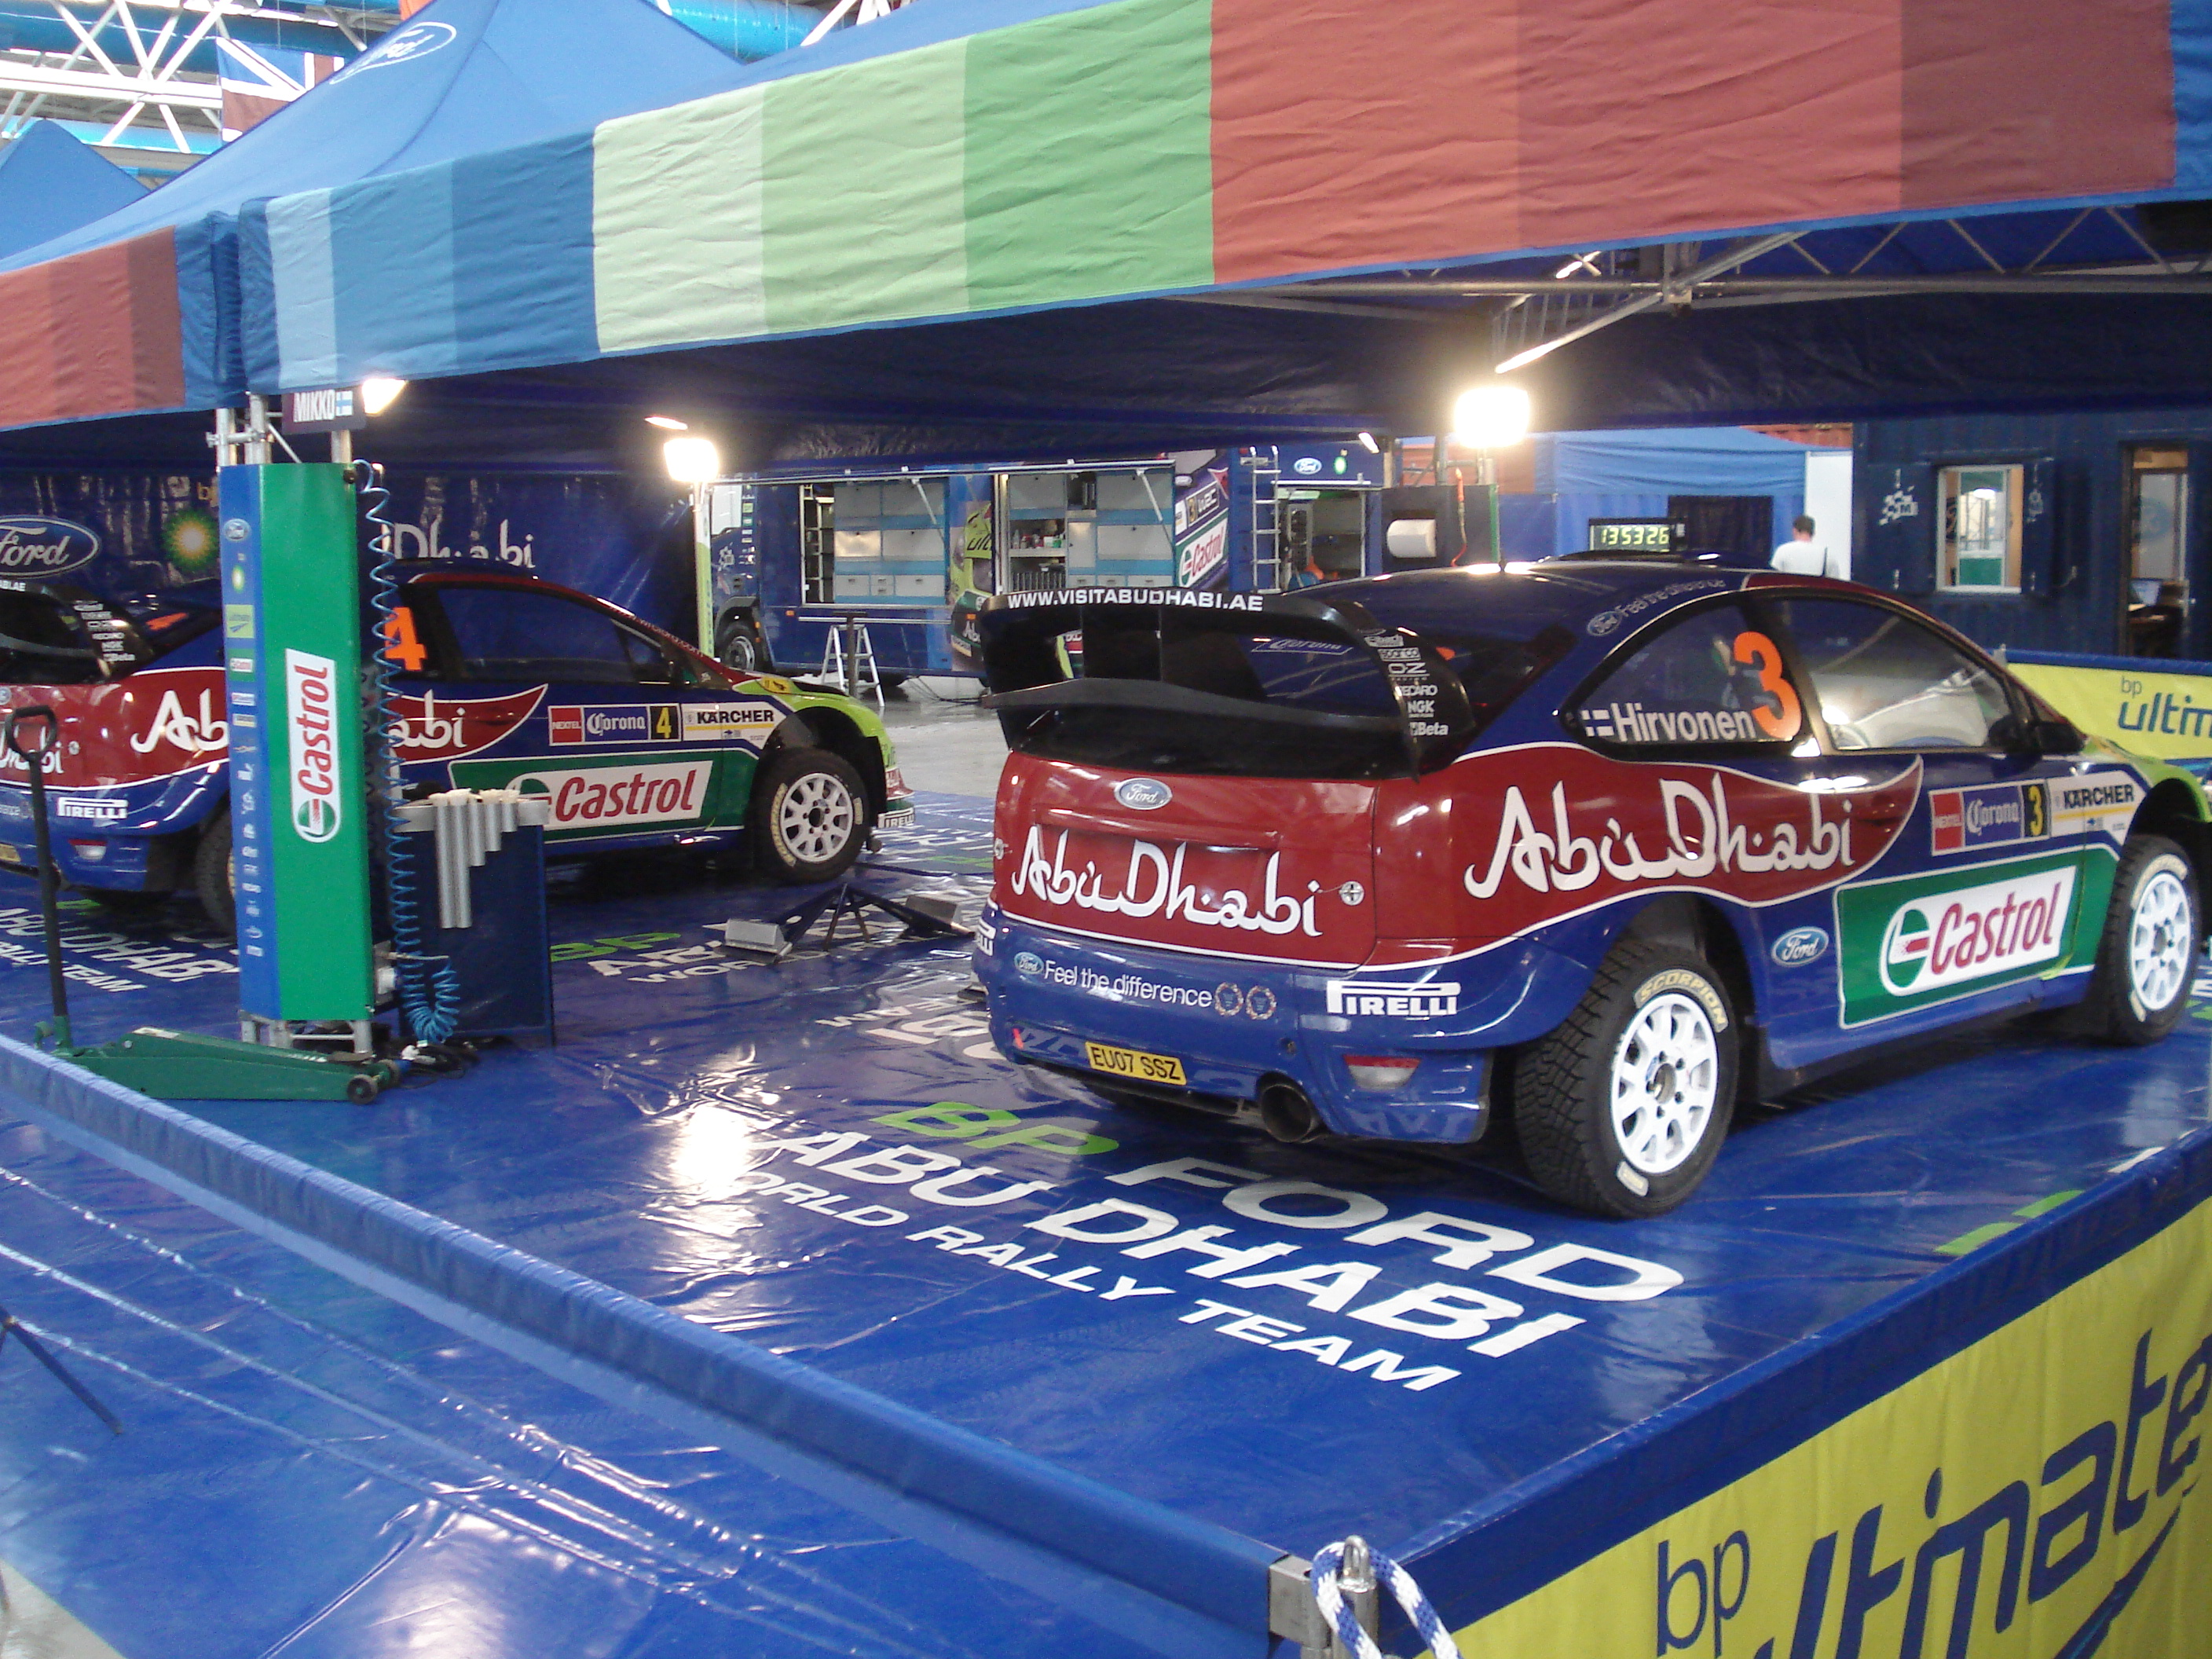 Depiction of Ford World Rally Team